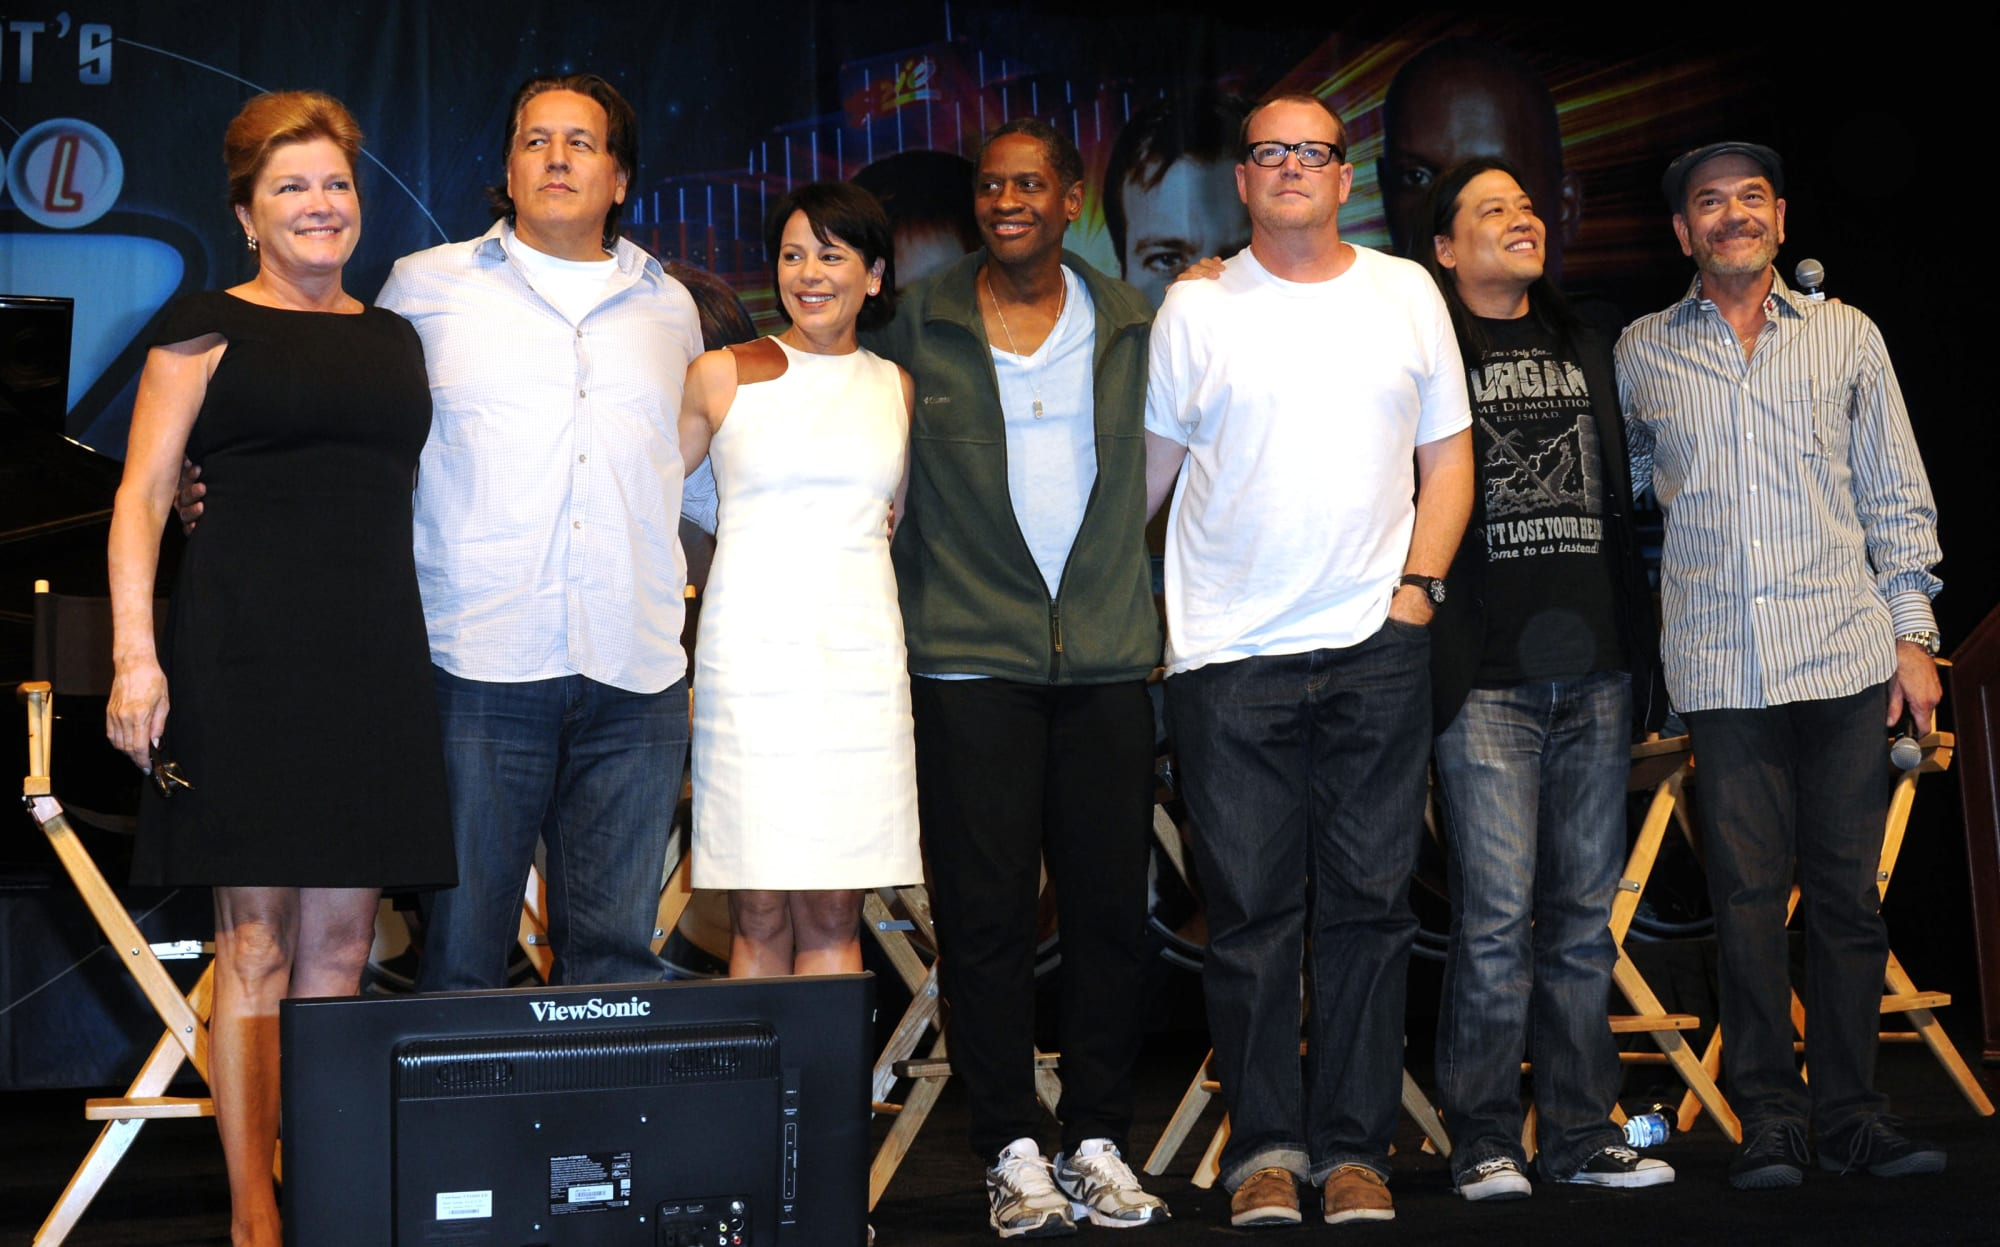 Star Trek Voyager: Watch the 25th anniversary reunion now on YouTube